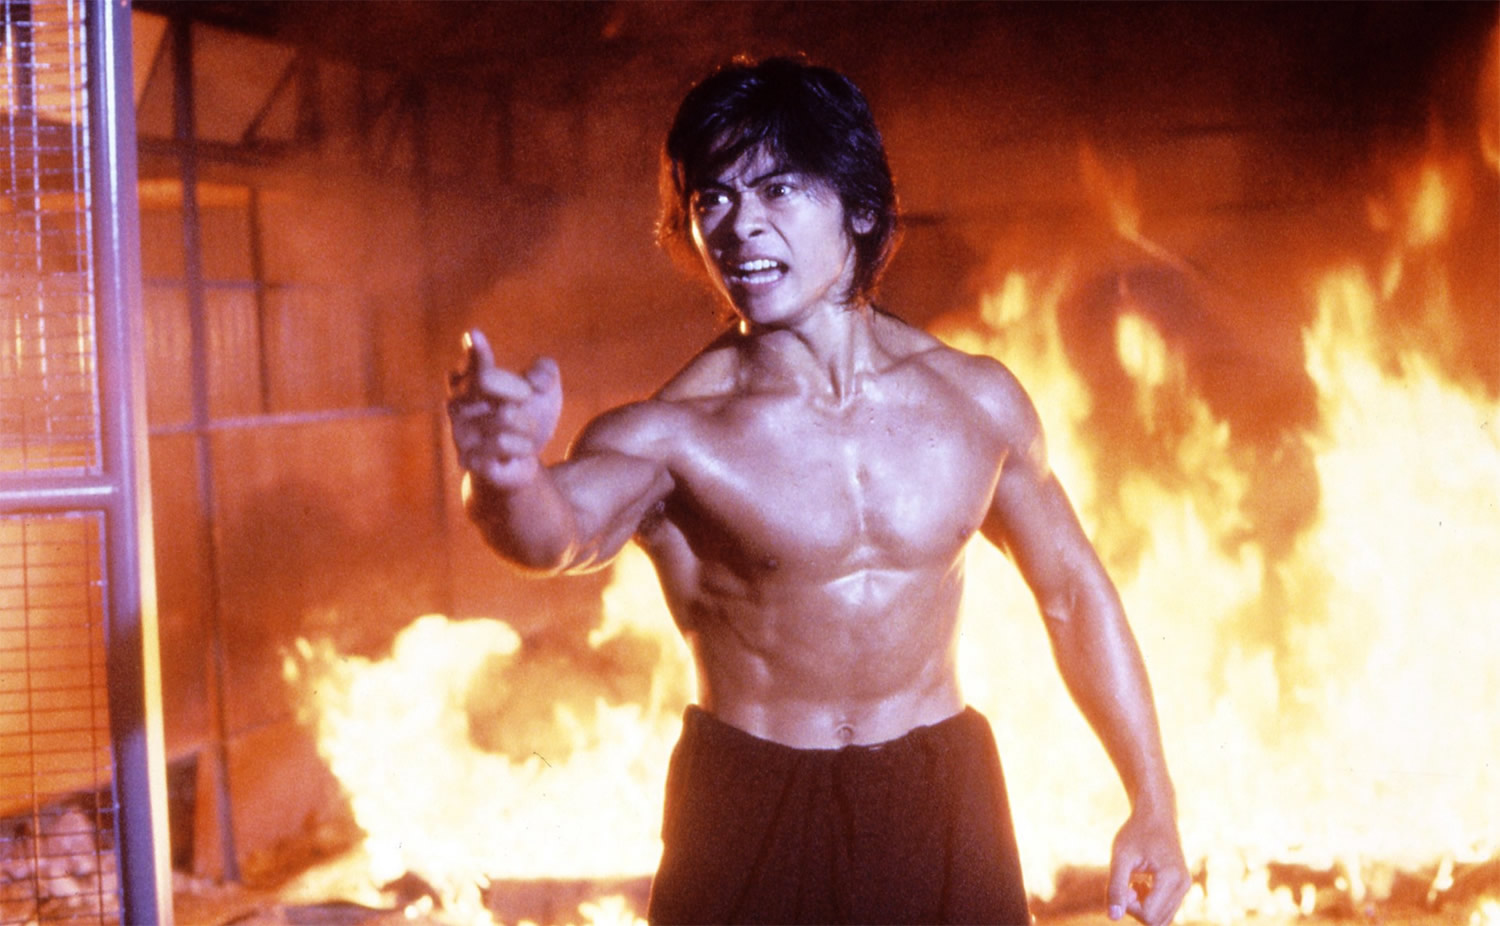 Riki-oh: The Story of Ricky, fire scene with main actor